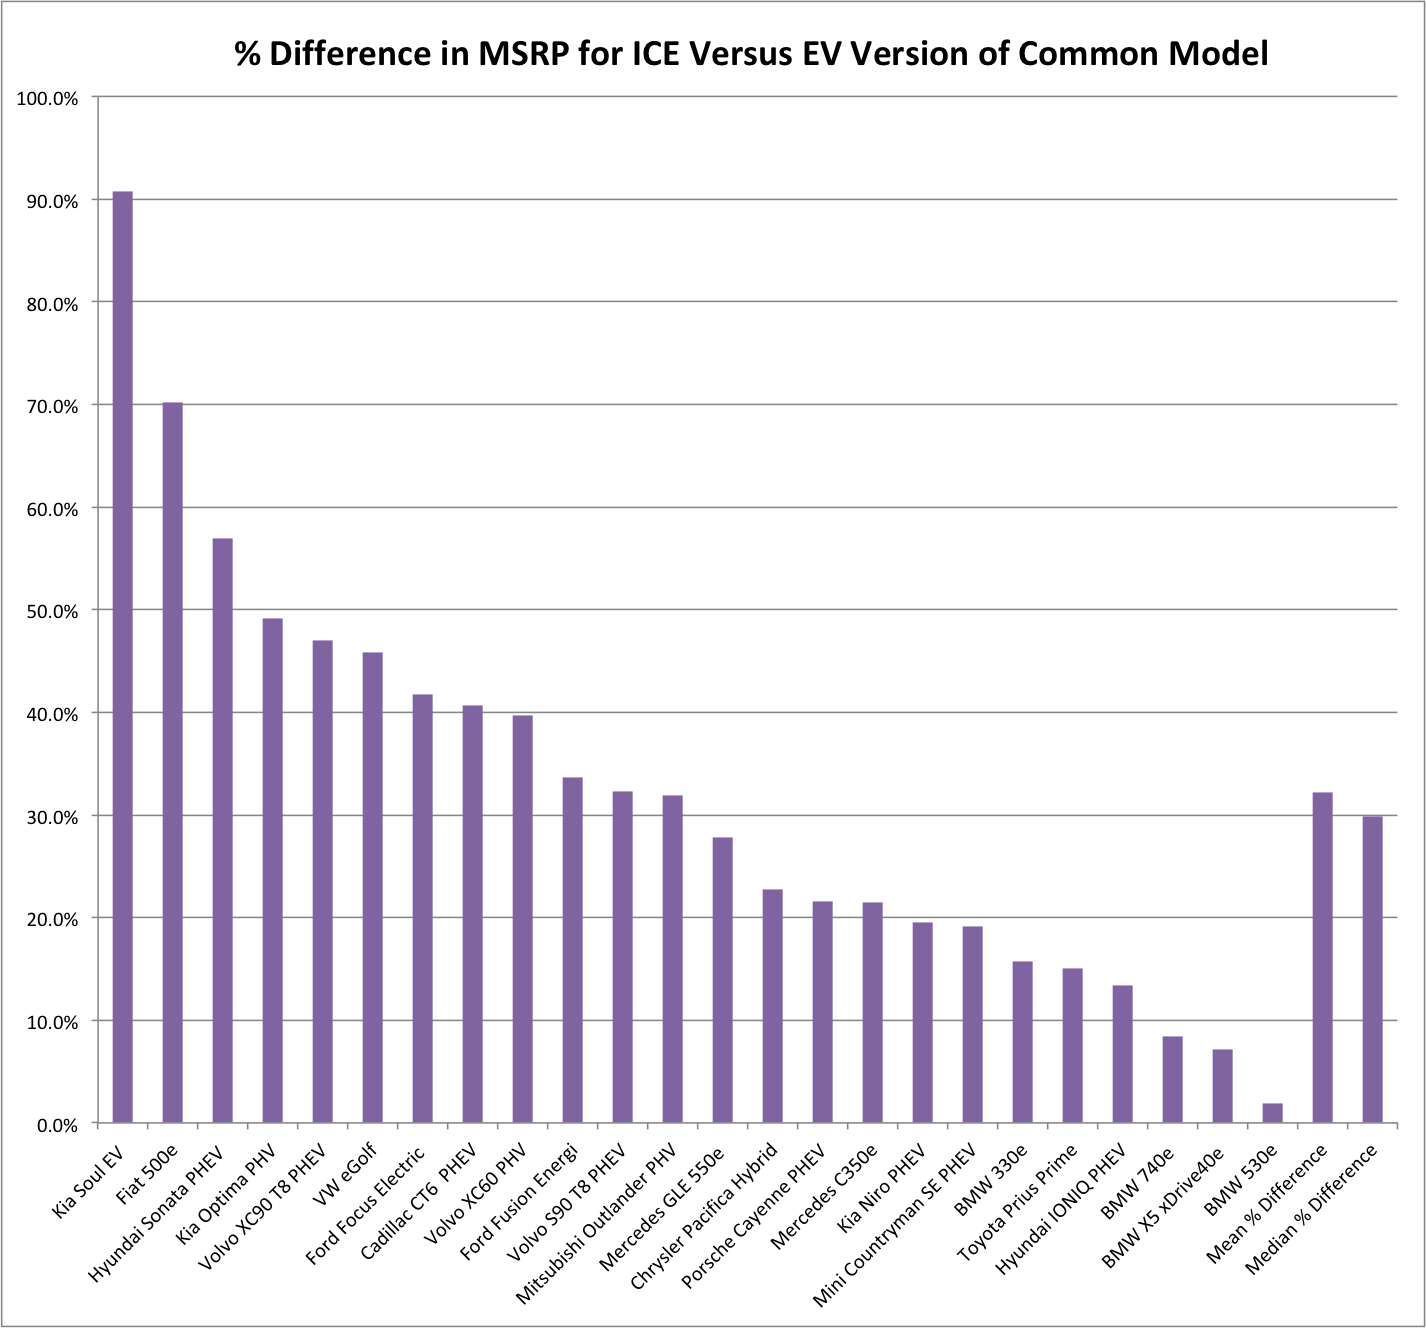 % Difference in MSRP ICE vs EV